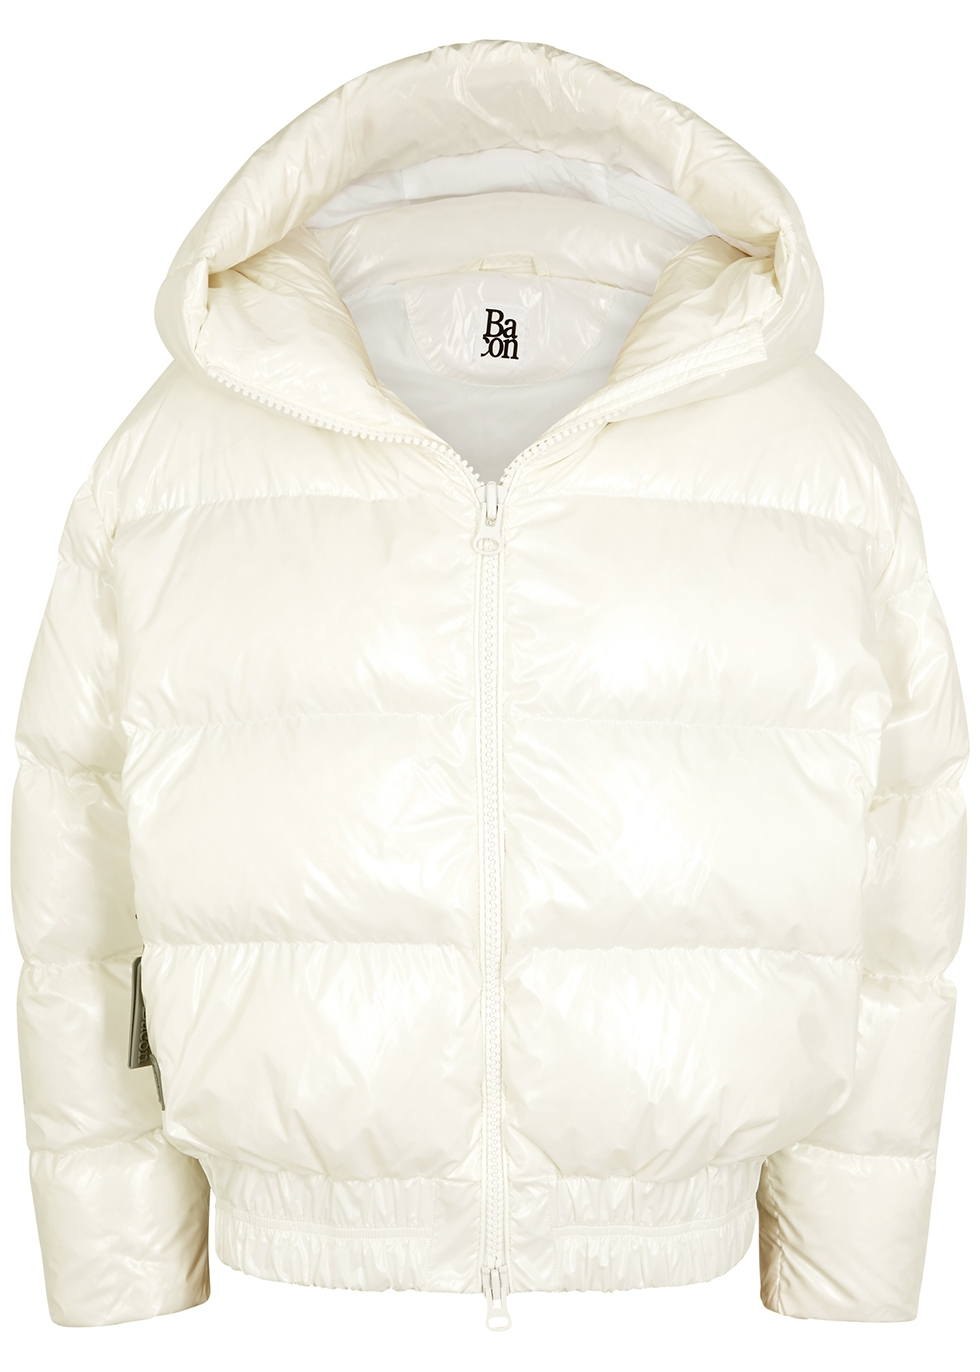 Cloud white quilted shell jacket